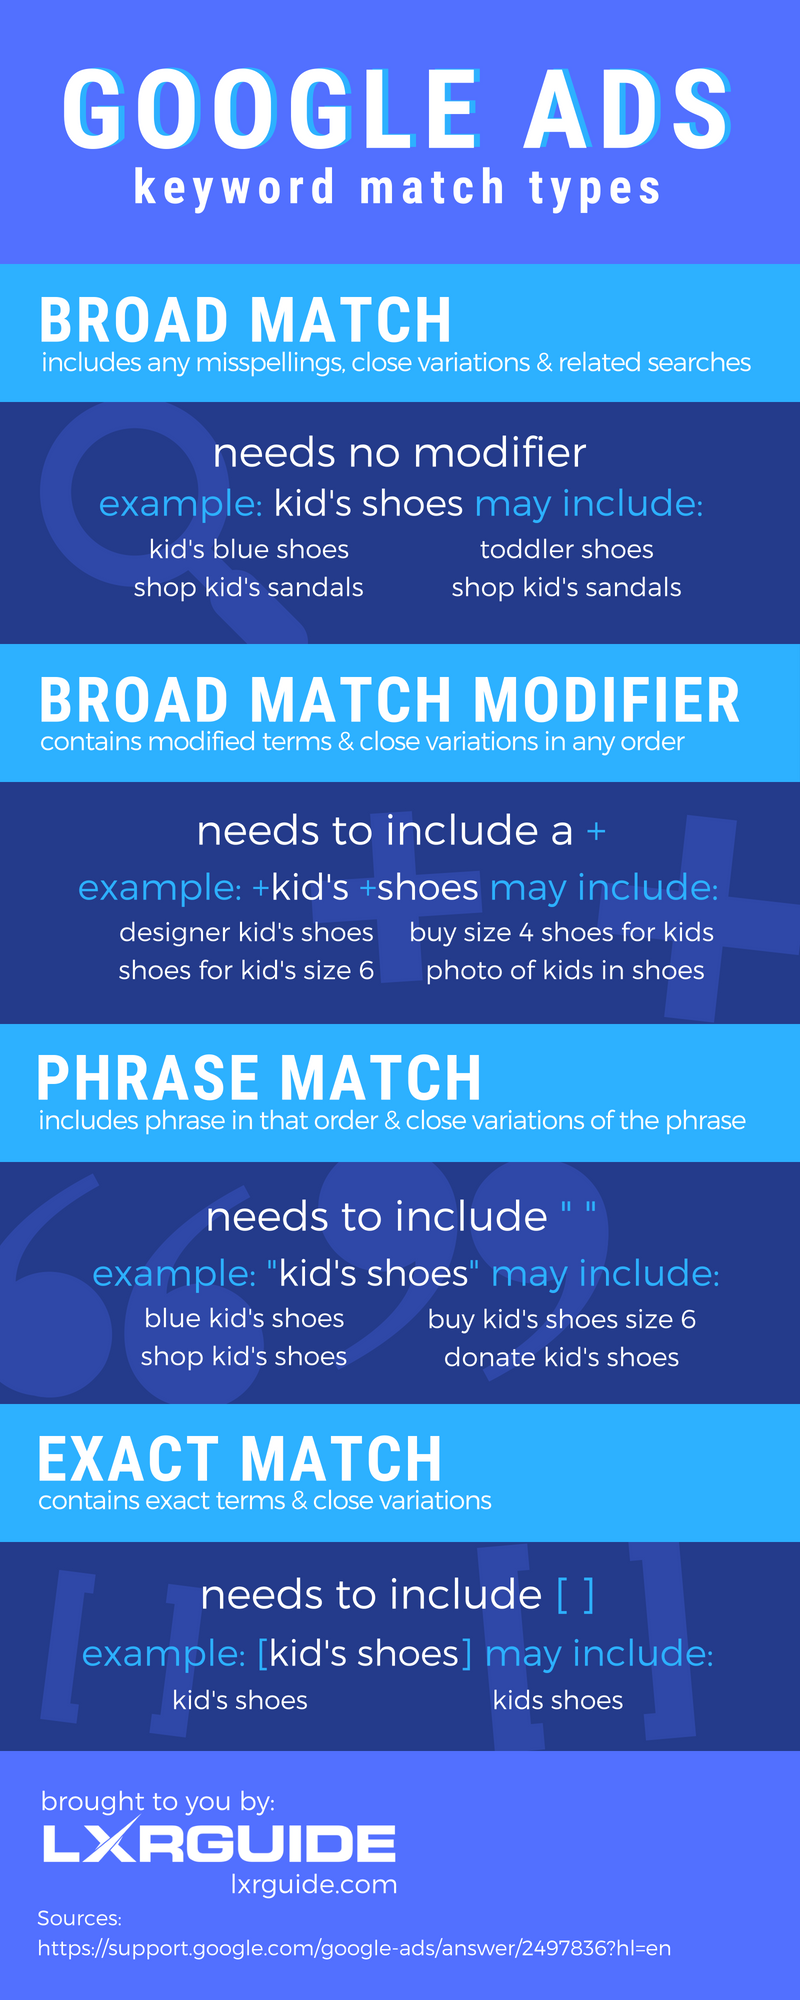 Google Ads Keyword Match Types Infographic The Lxrguide Blog